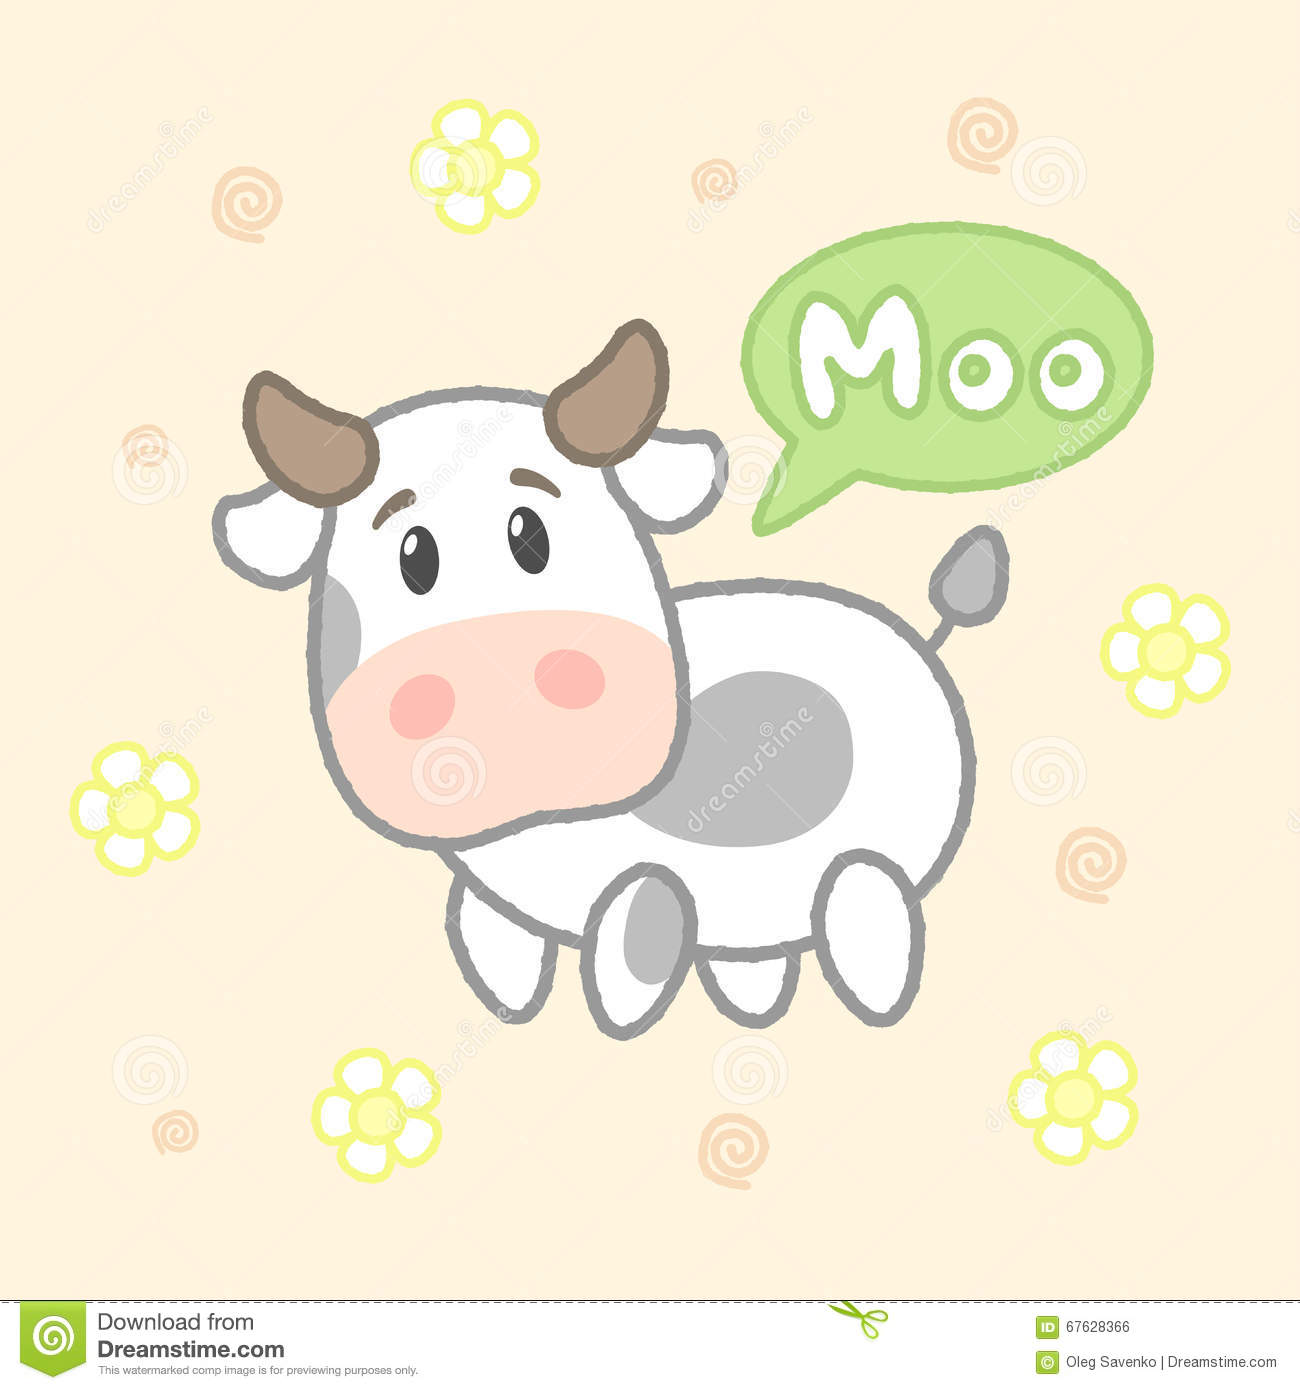 Cow drawings for kids